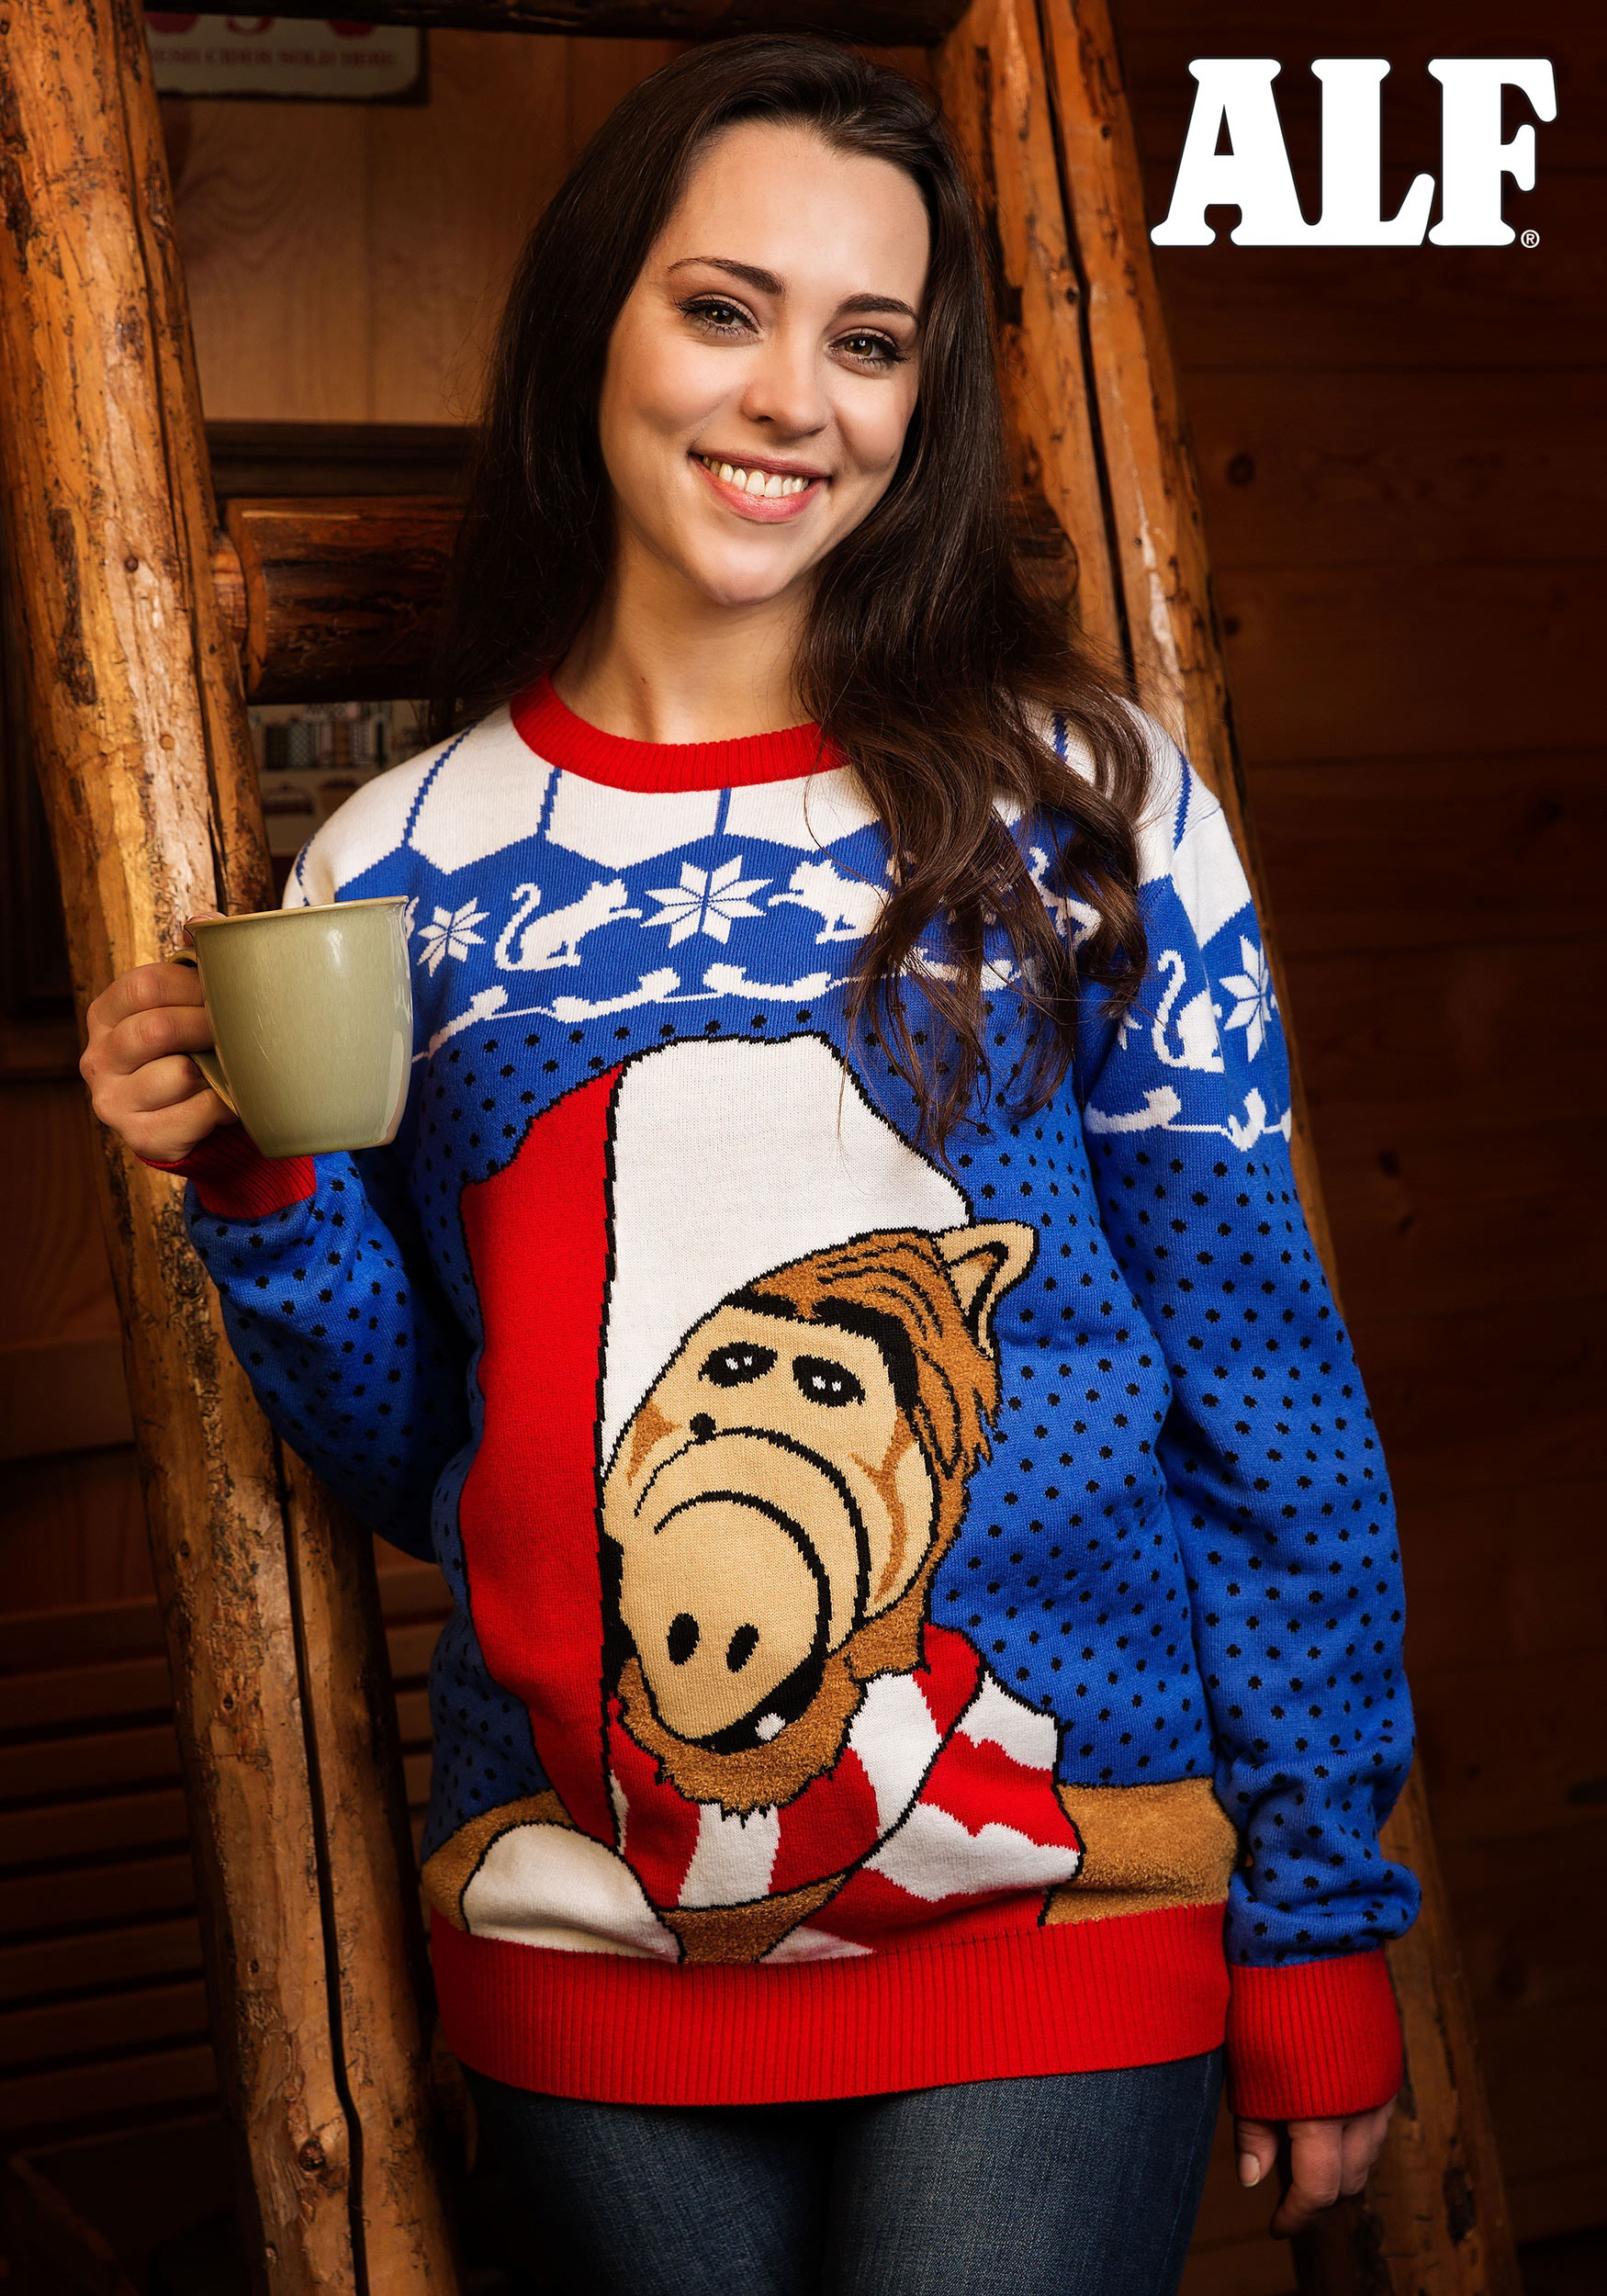 e4c0d6d2b Alf Ugly Christmas Sweater for Adults